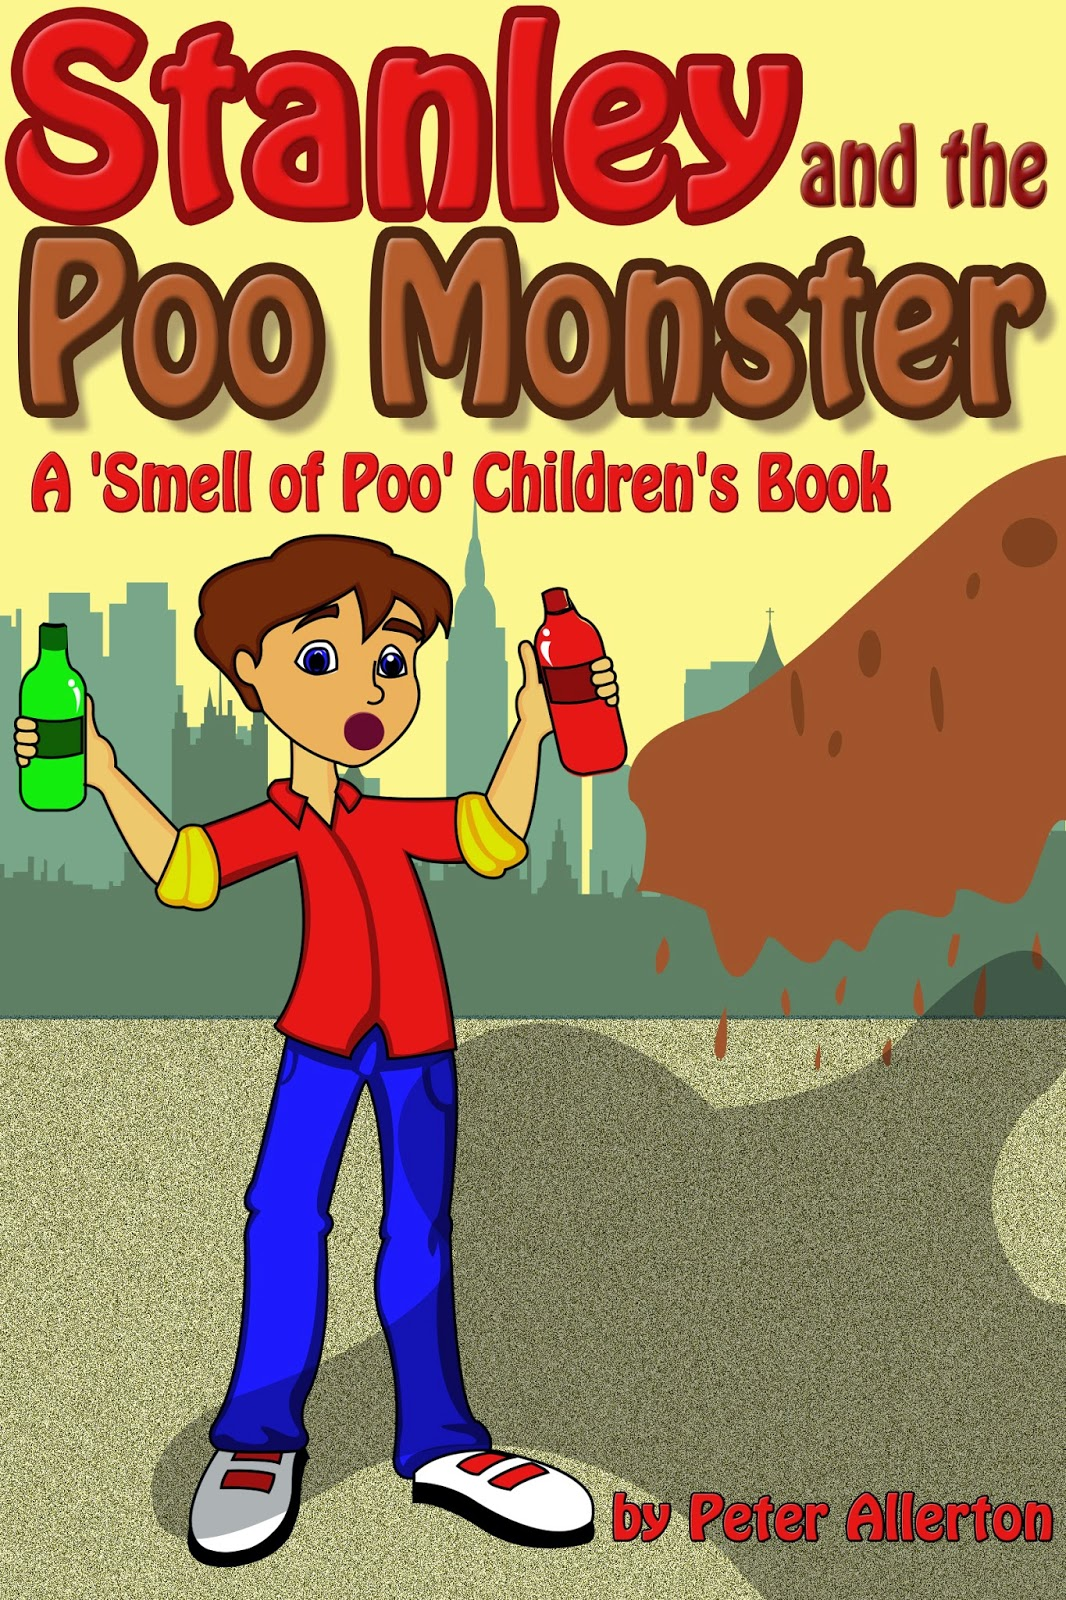 funny children's monster story book